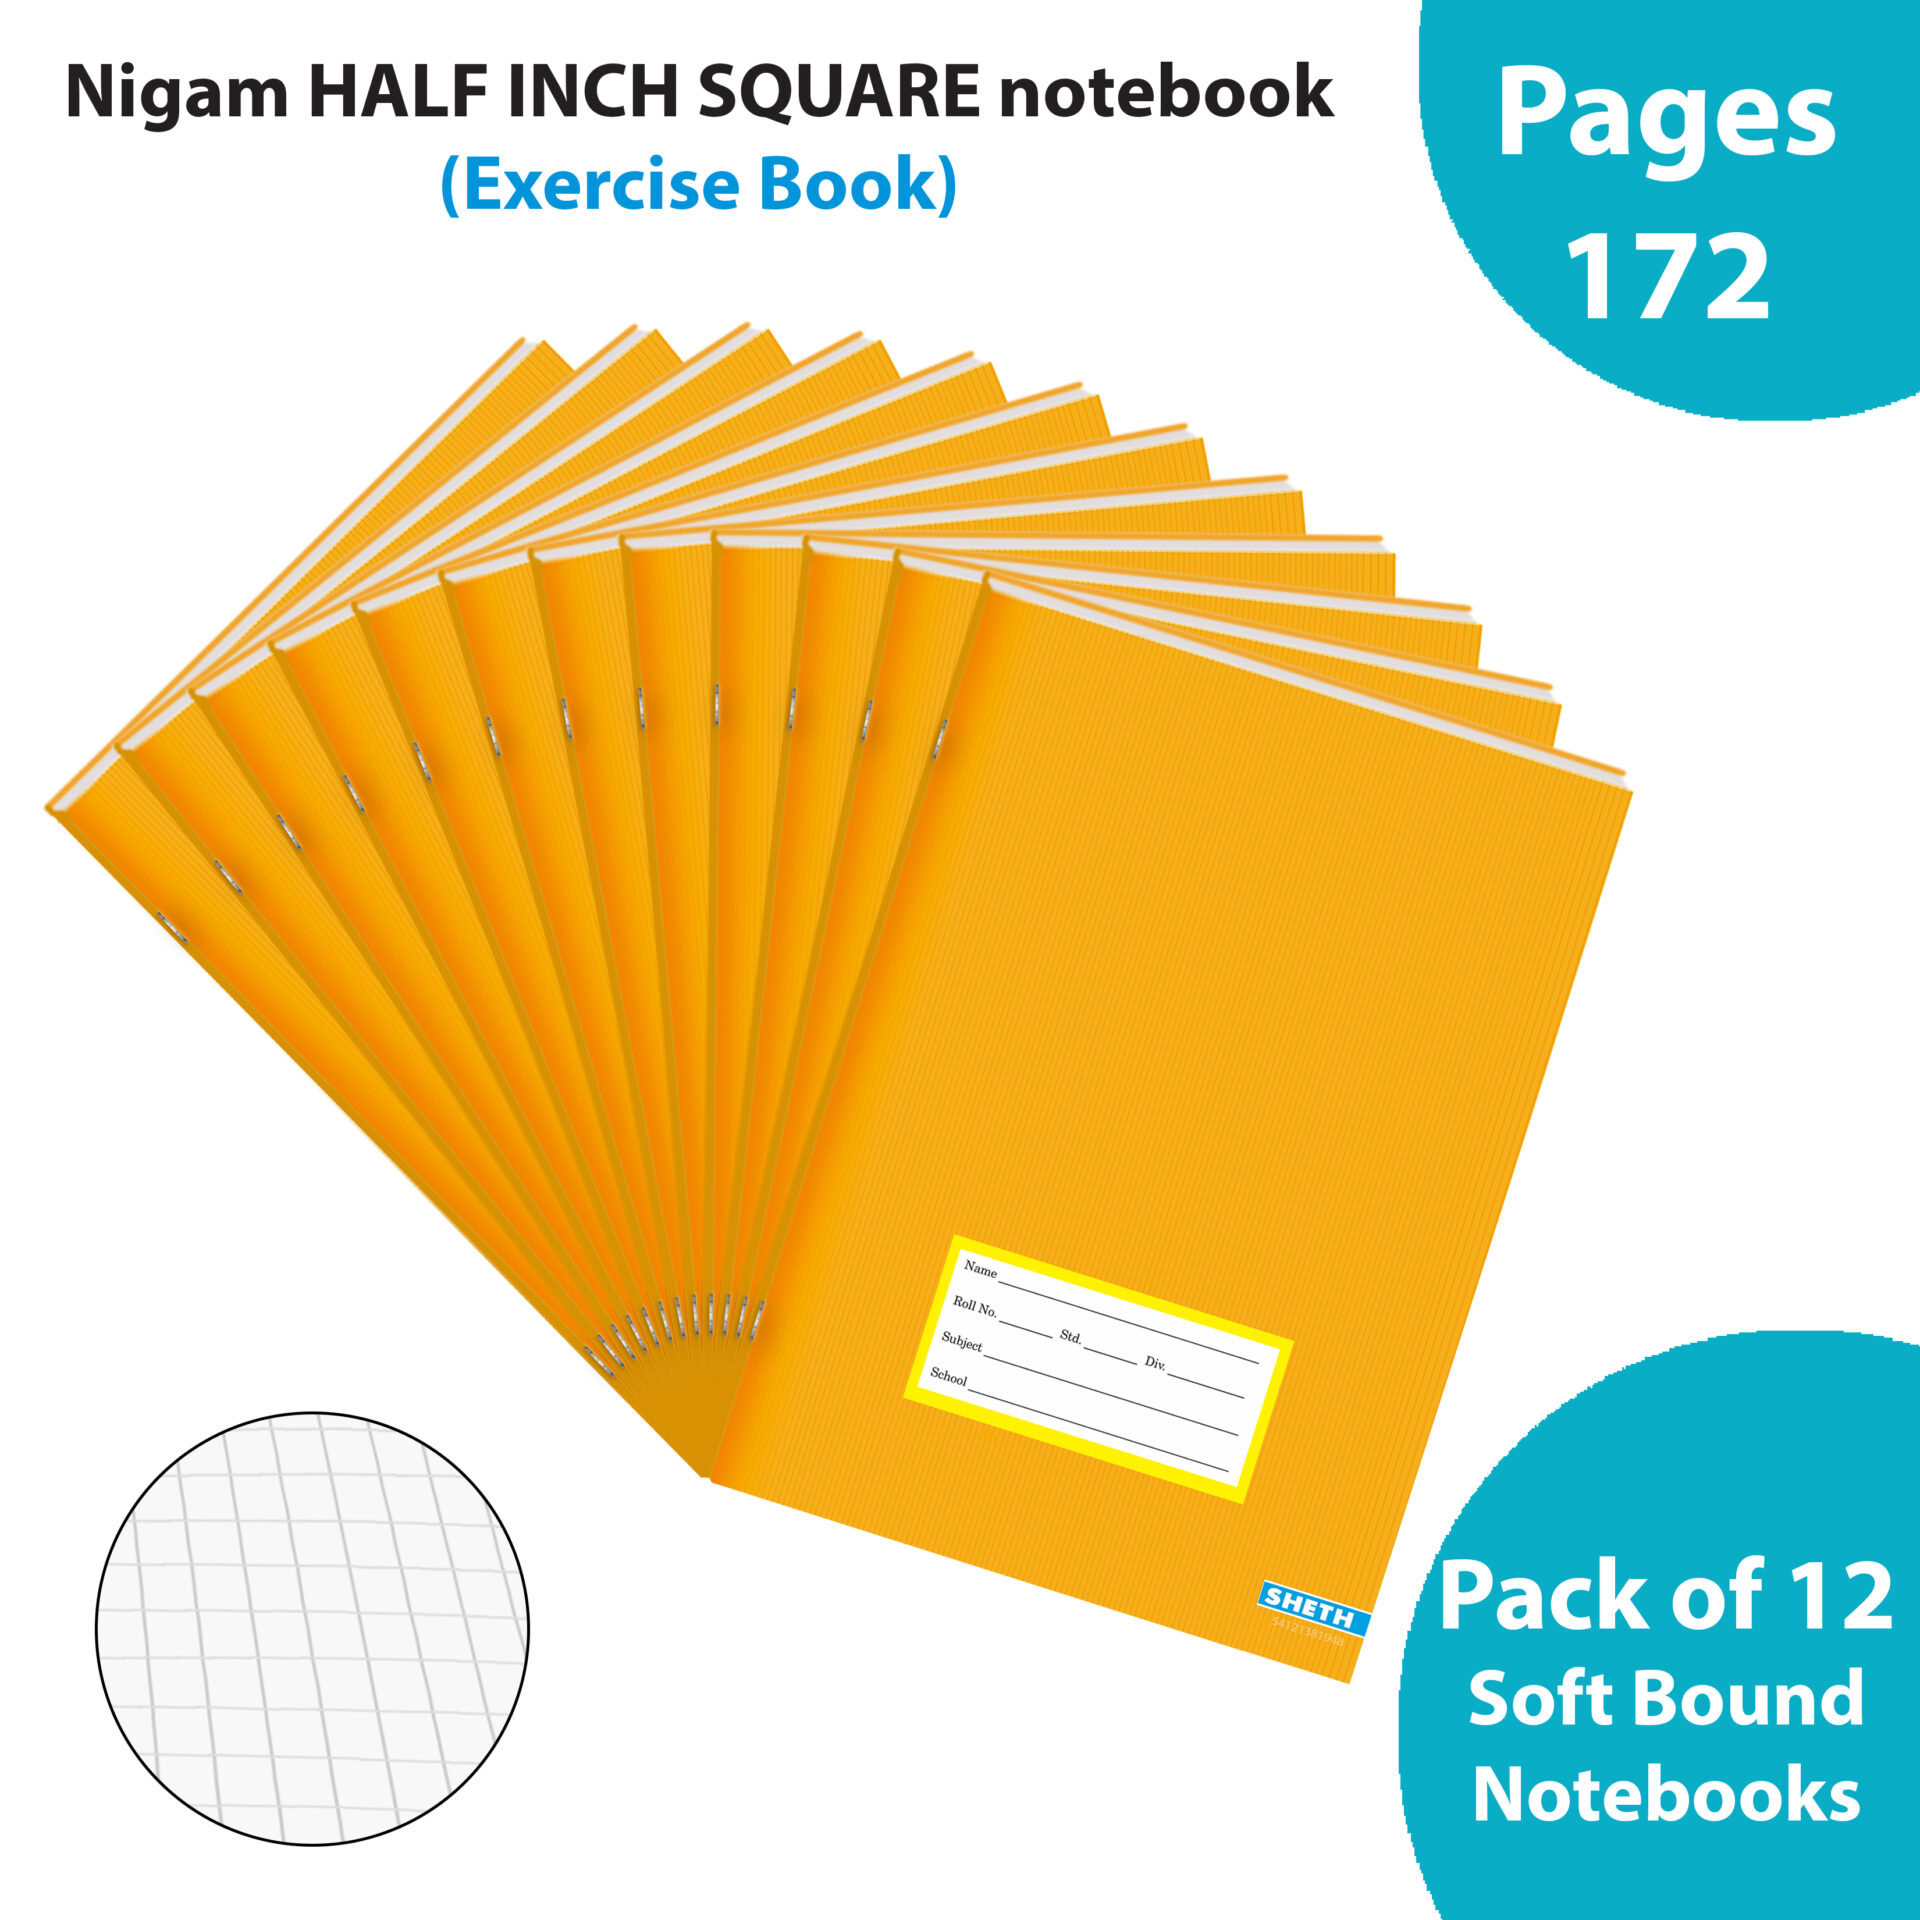 Nigam 12 inch Square A5 Note Book 172 Pages Soft Bound Set of 12 1